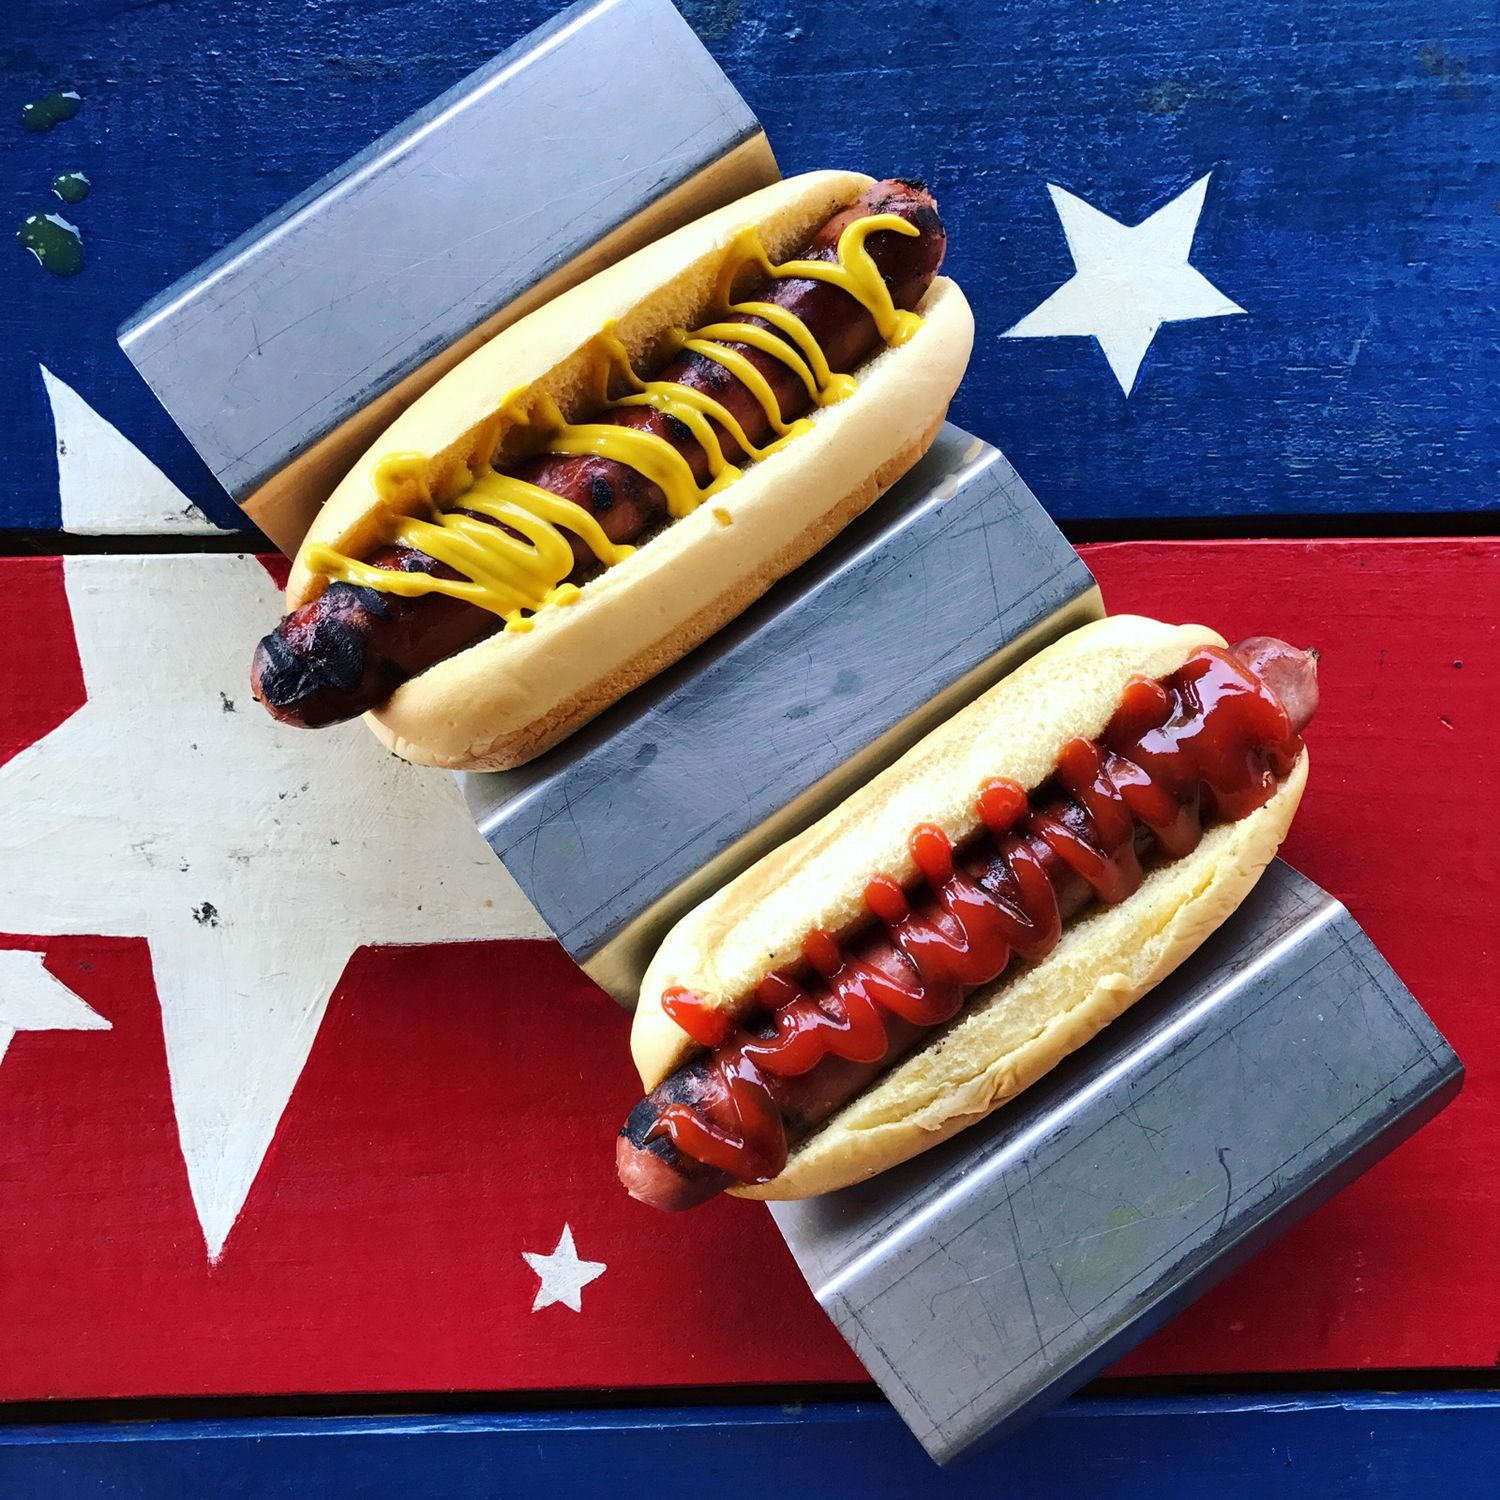 Mustard Still the Top Dog of Hot Dog Toppings, According to Hot Dog King JJ's Red Hots